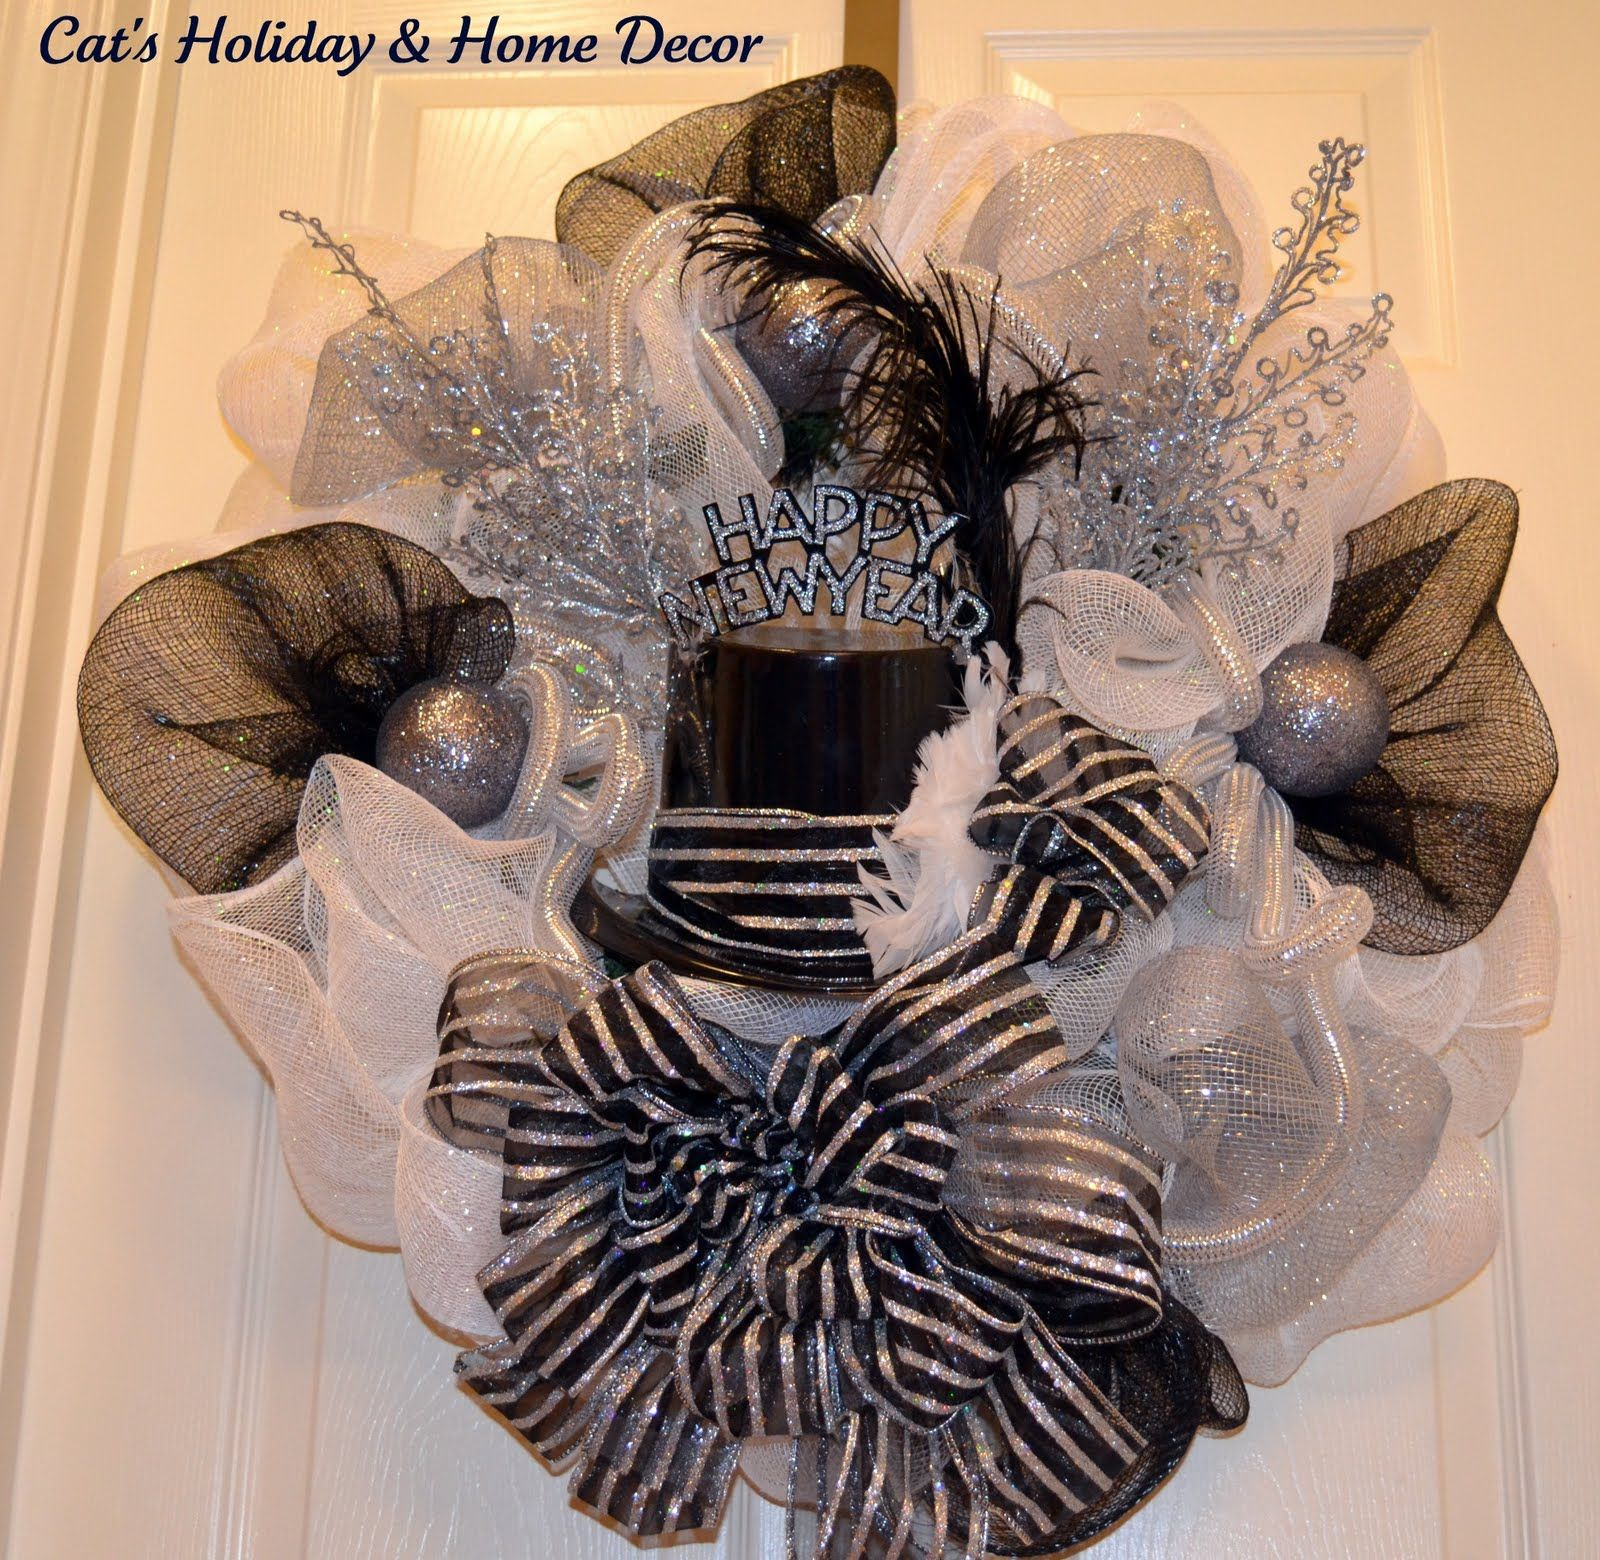 New Year's Eve Wreath idea | Home decor, Decor, Wreaths